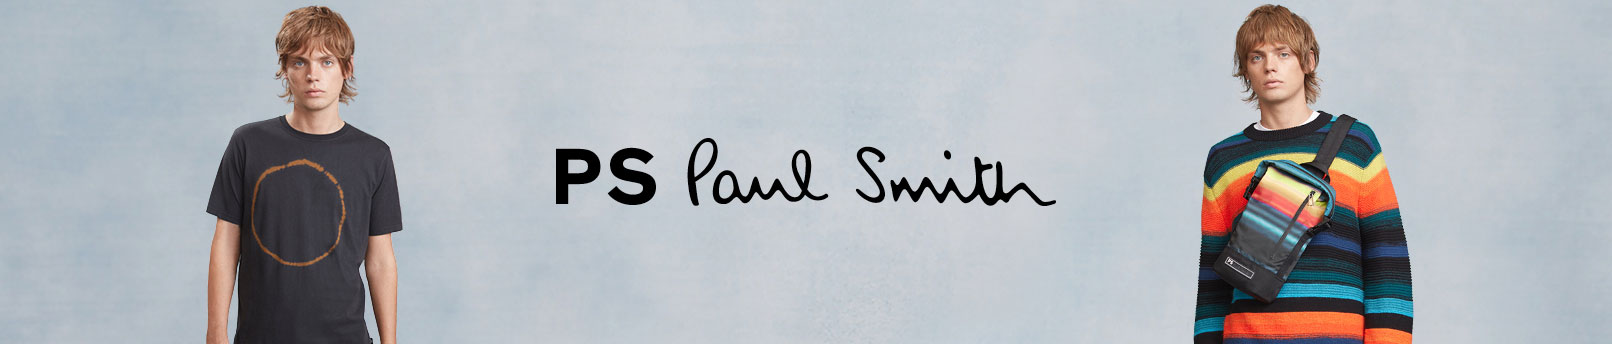 Shop PS Paul Smith